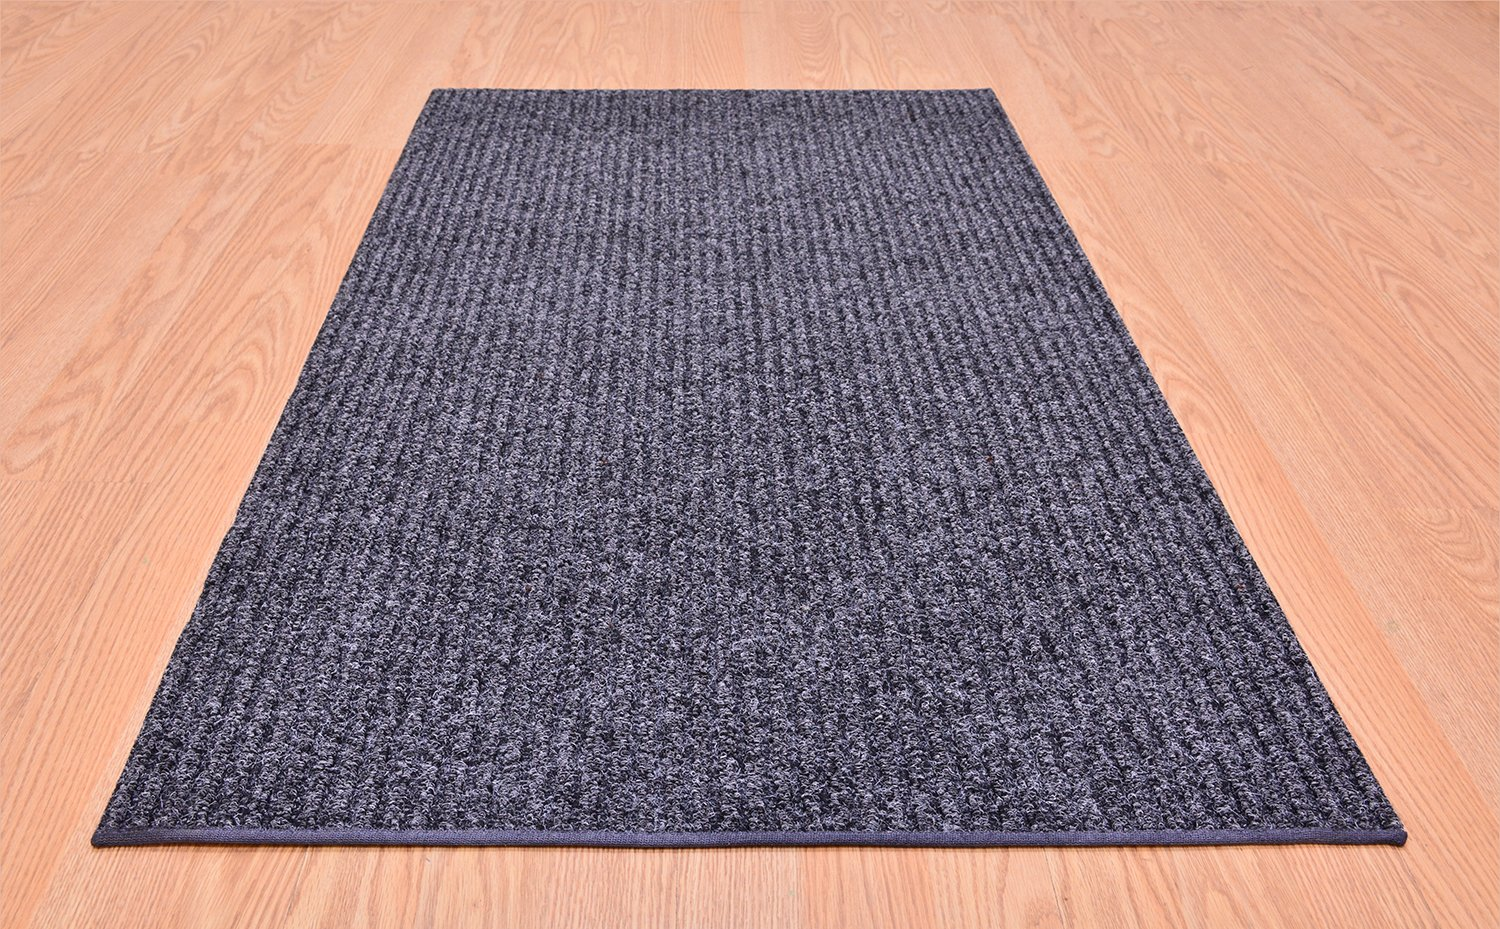 Amazon tough collection custom size roll runner grey 27 in or amazon tough collection custom size roll runner grey 27 in or 36 in wide x your custom length choice by feet slip skid resistant rubber back area rugs baanklon Images